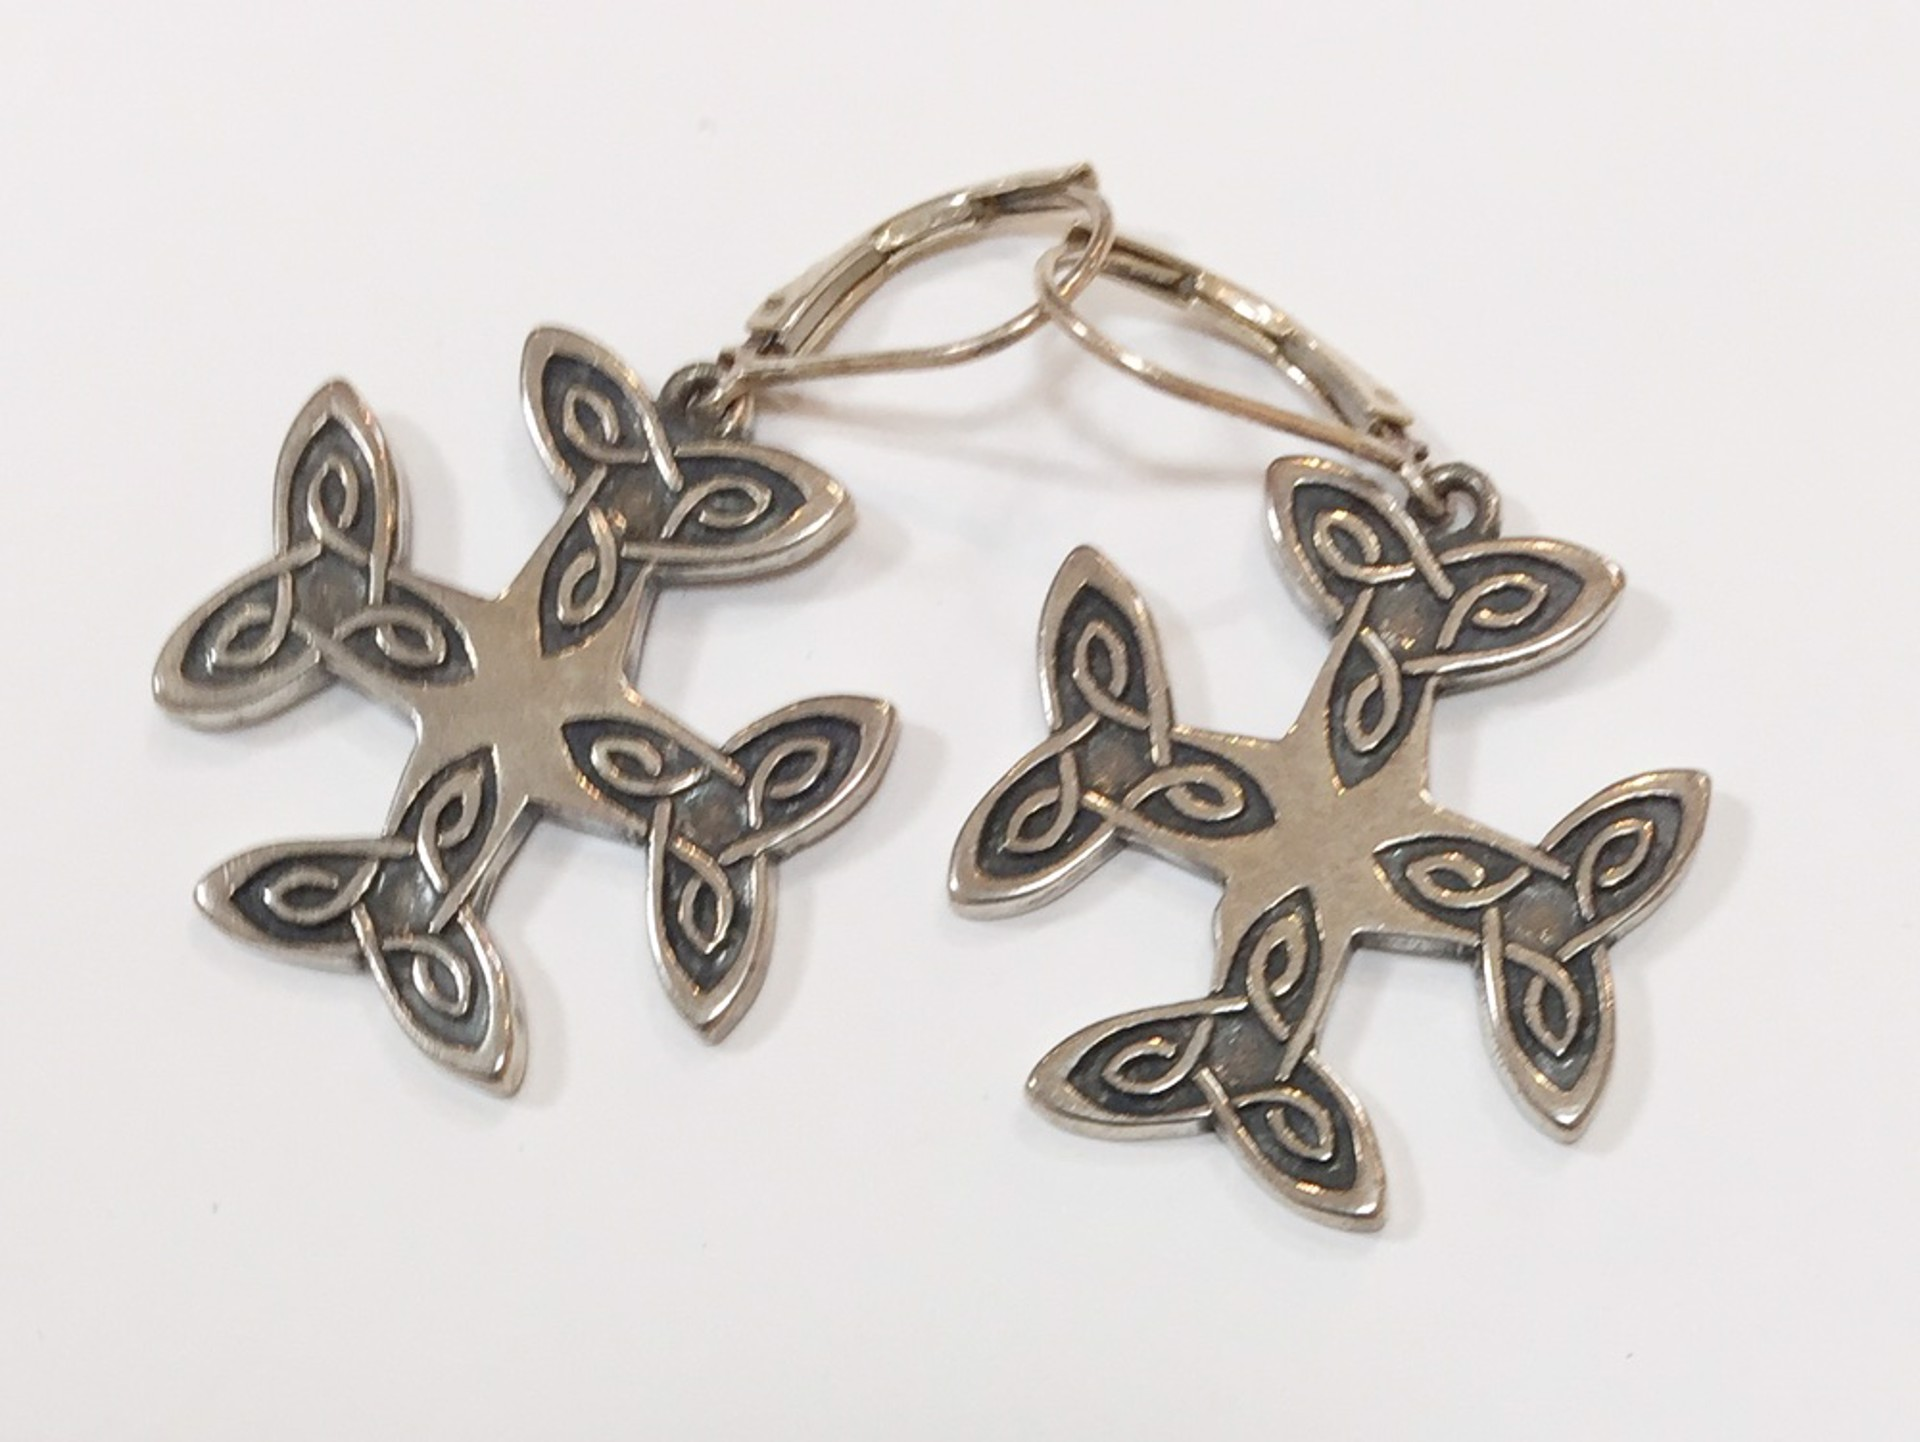 Earrings - Silver Cross Of The Blessed Virgin Mary 7307 by Deanne McKeown